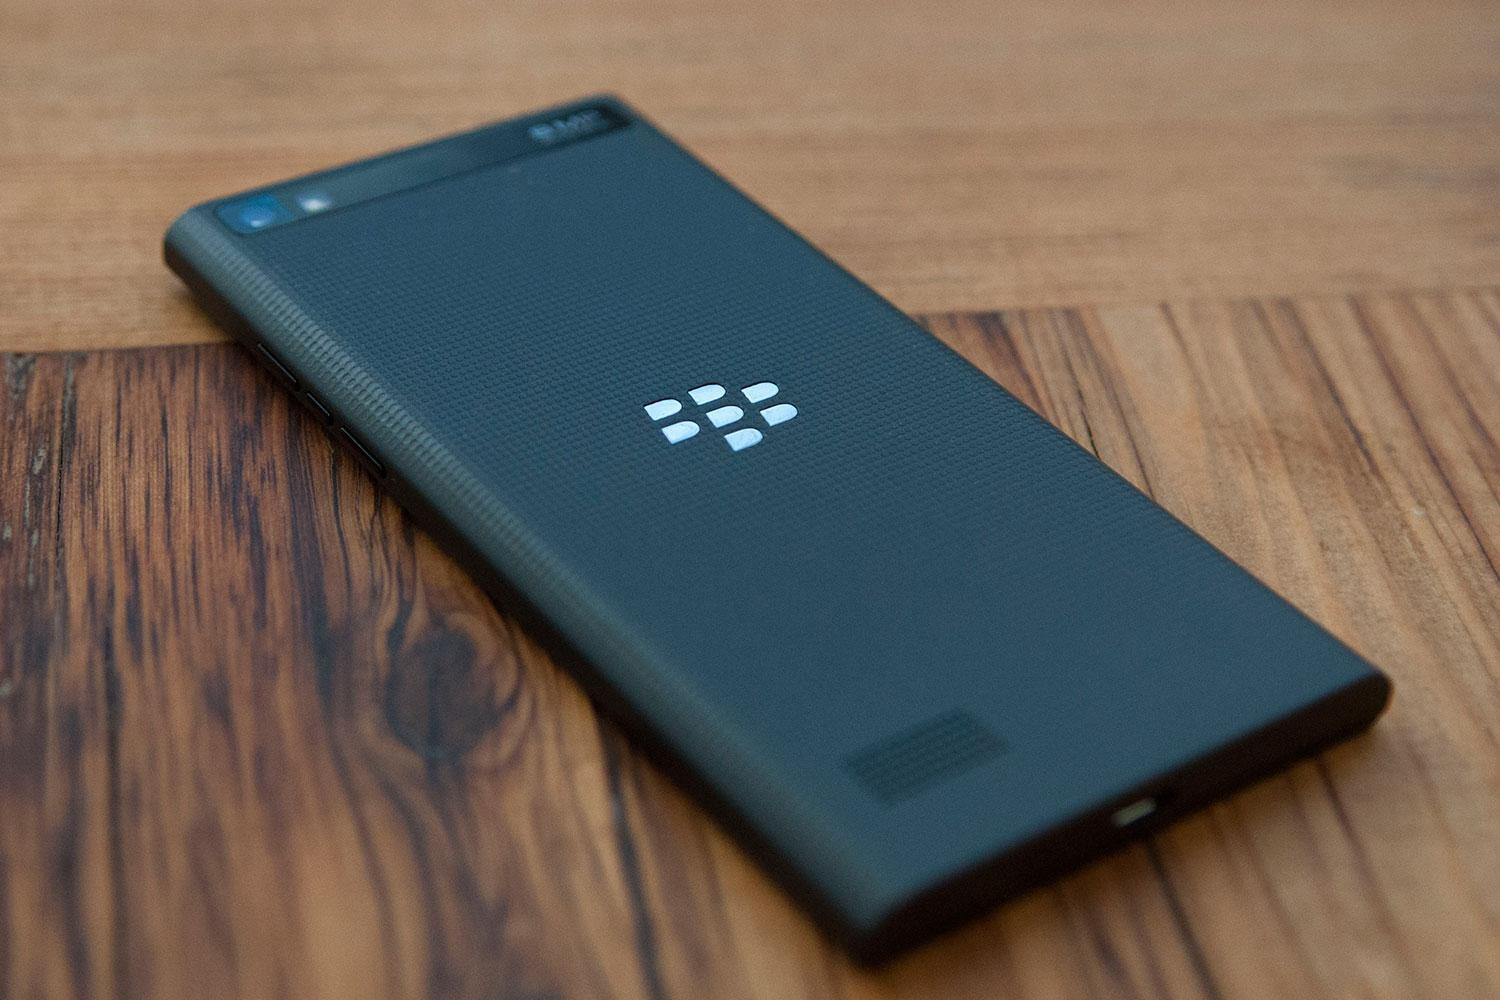 Still rockin' a BlackBerry? You might want to check out its Black Friday deals